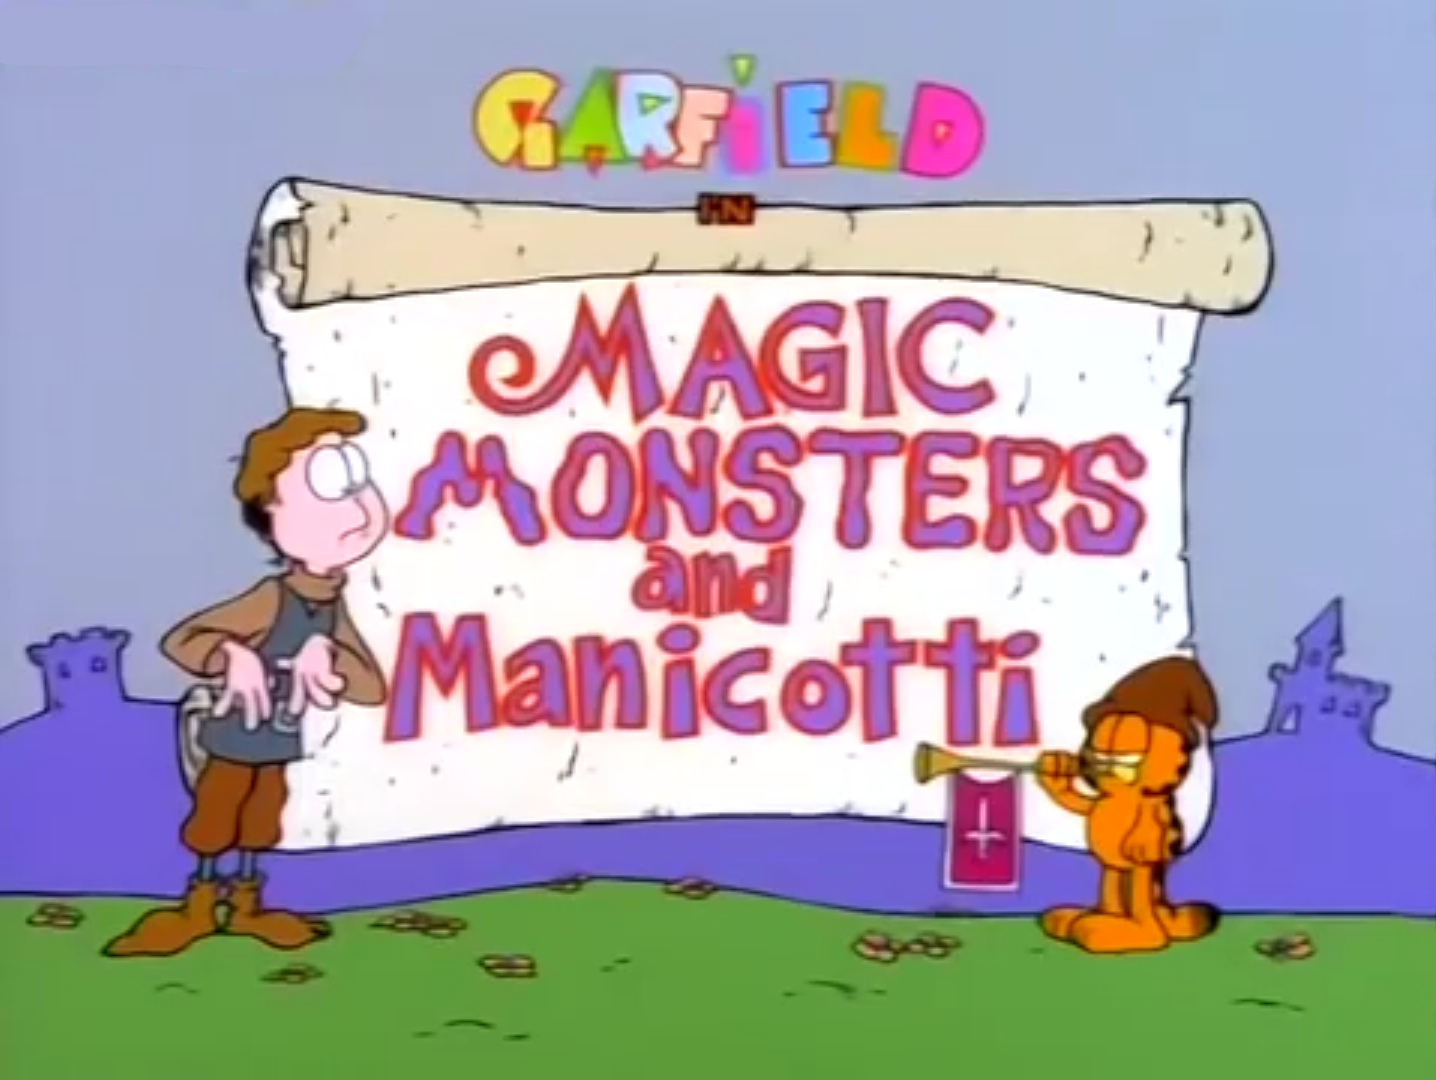 Magic, Monsters, and Manicotti